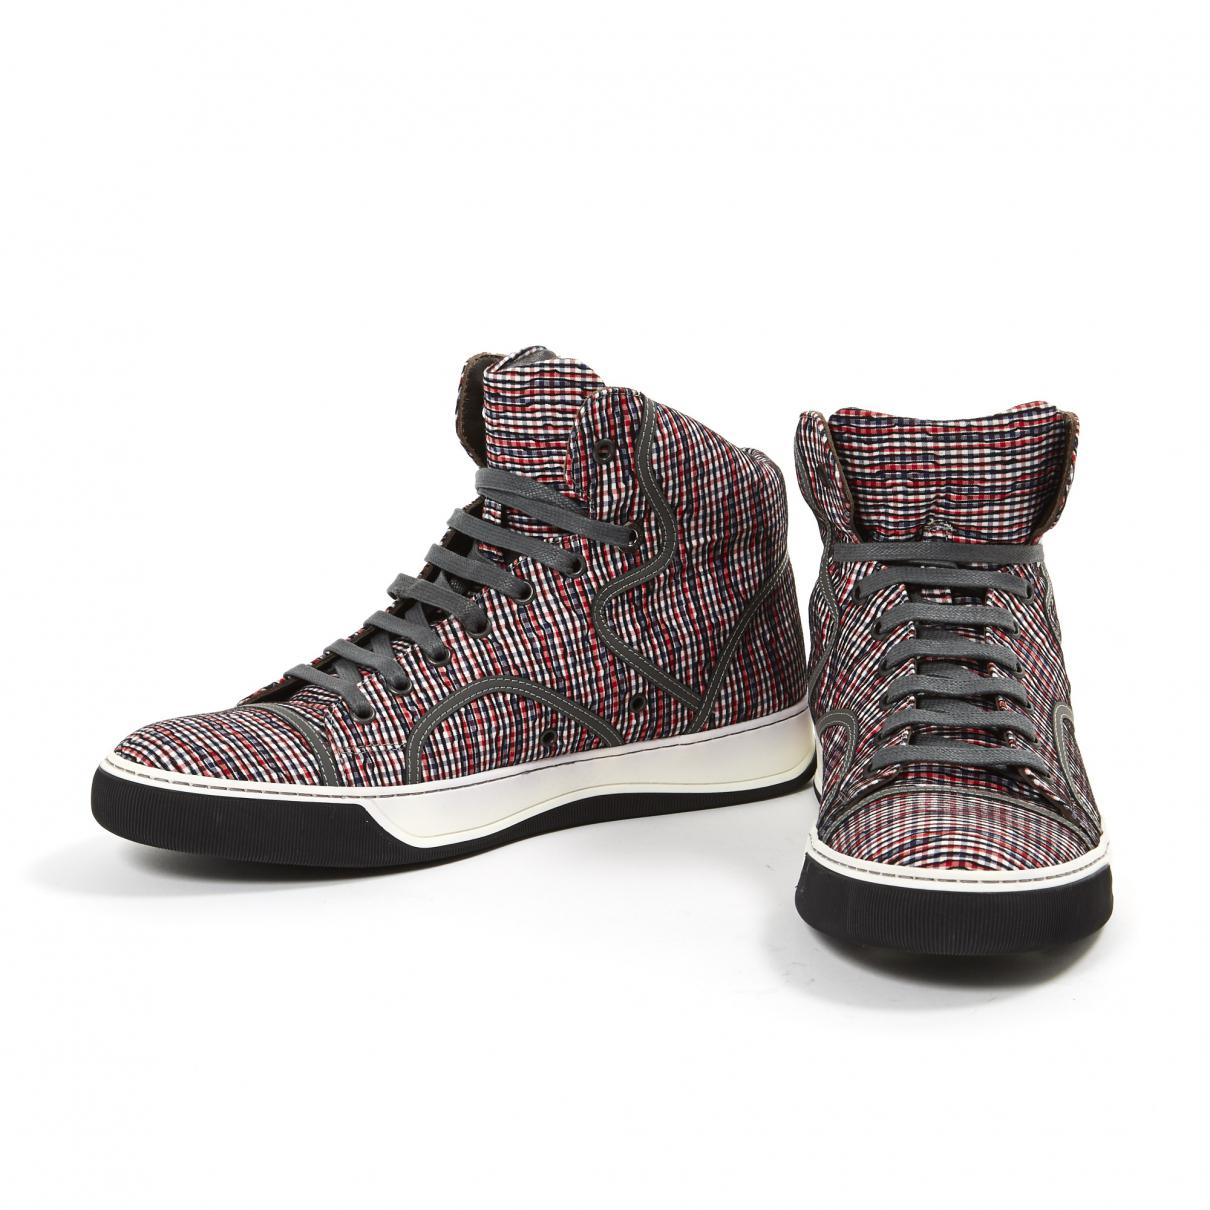 Pre-owned - Cloth high trainers Lanvin 2waKBkrTZT